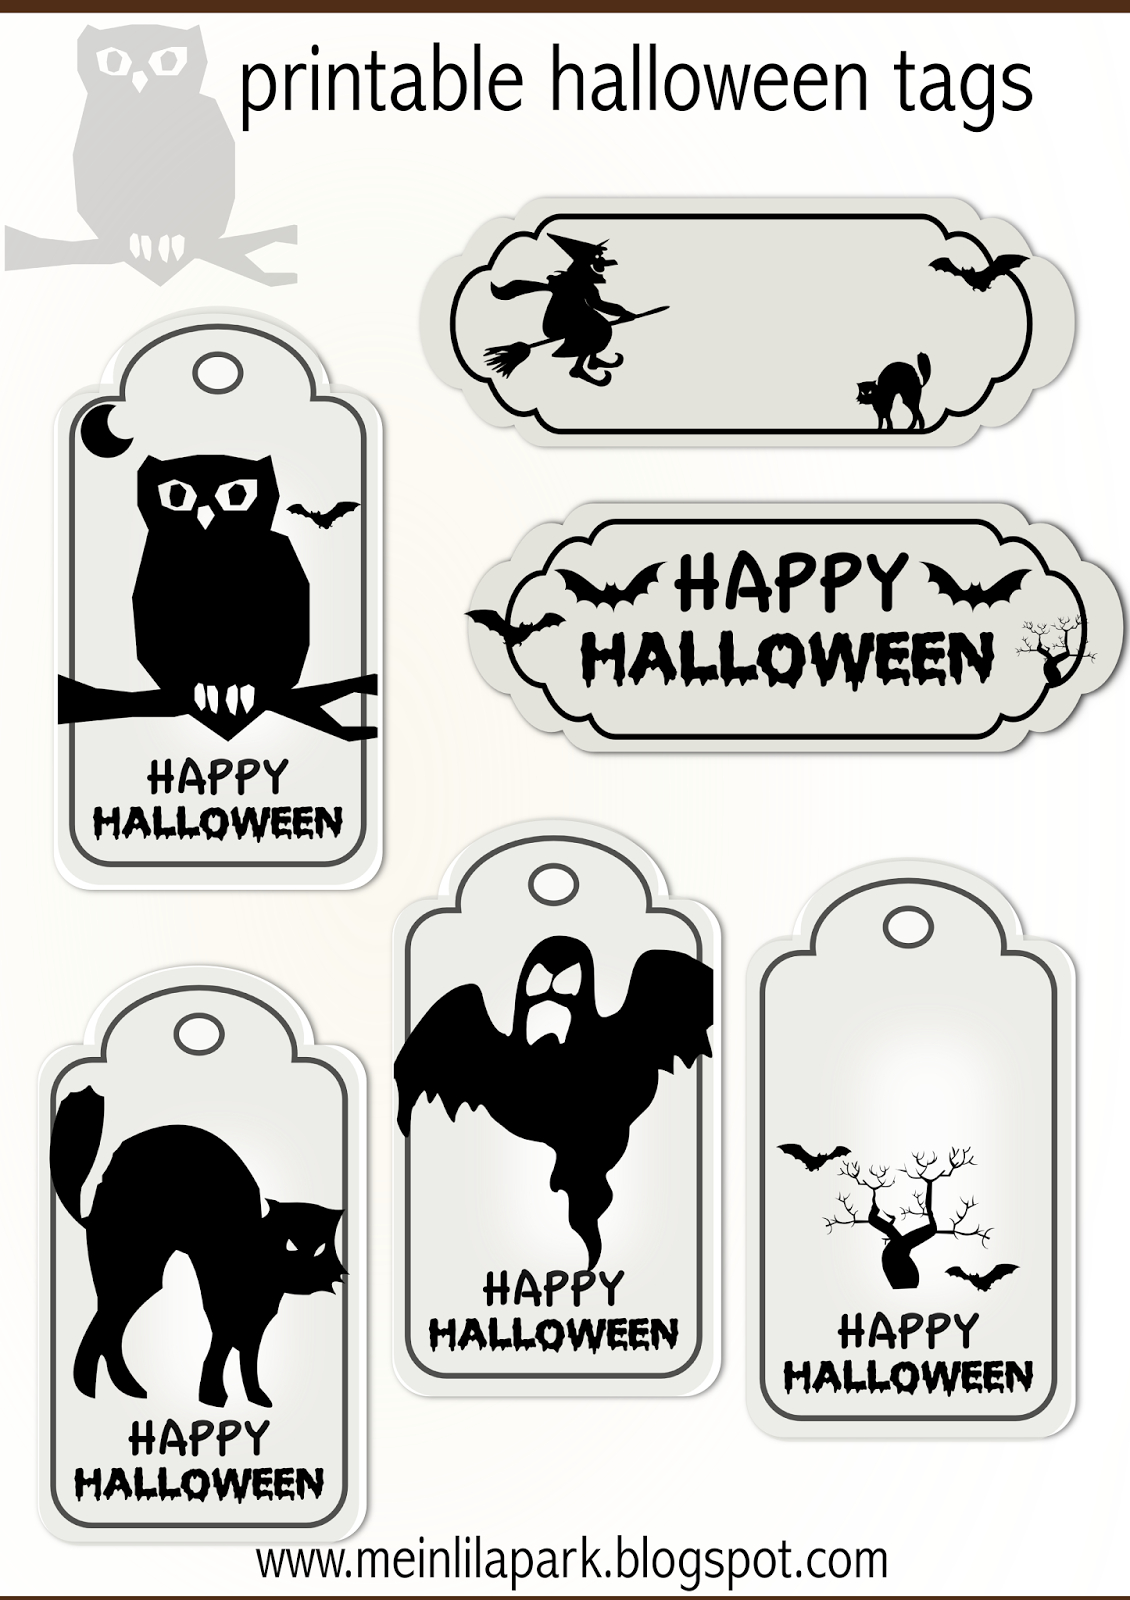 Free Printable Halloween Tags - Druckvorlage Halloween - Freebie - Free Printable Halloween Decorations